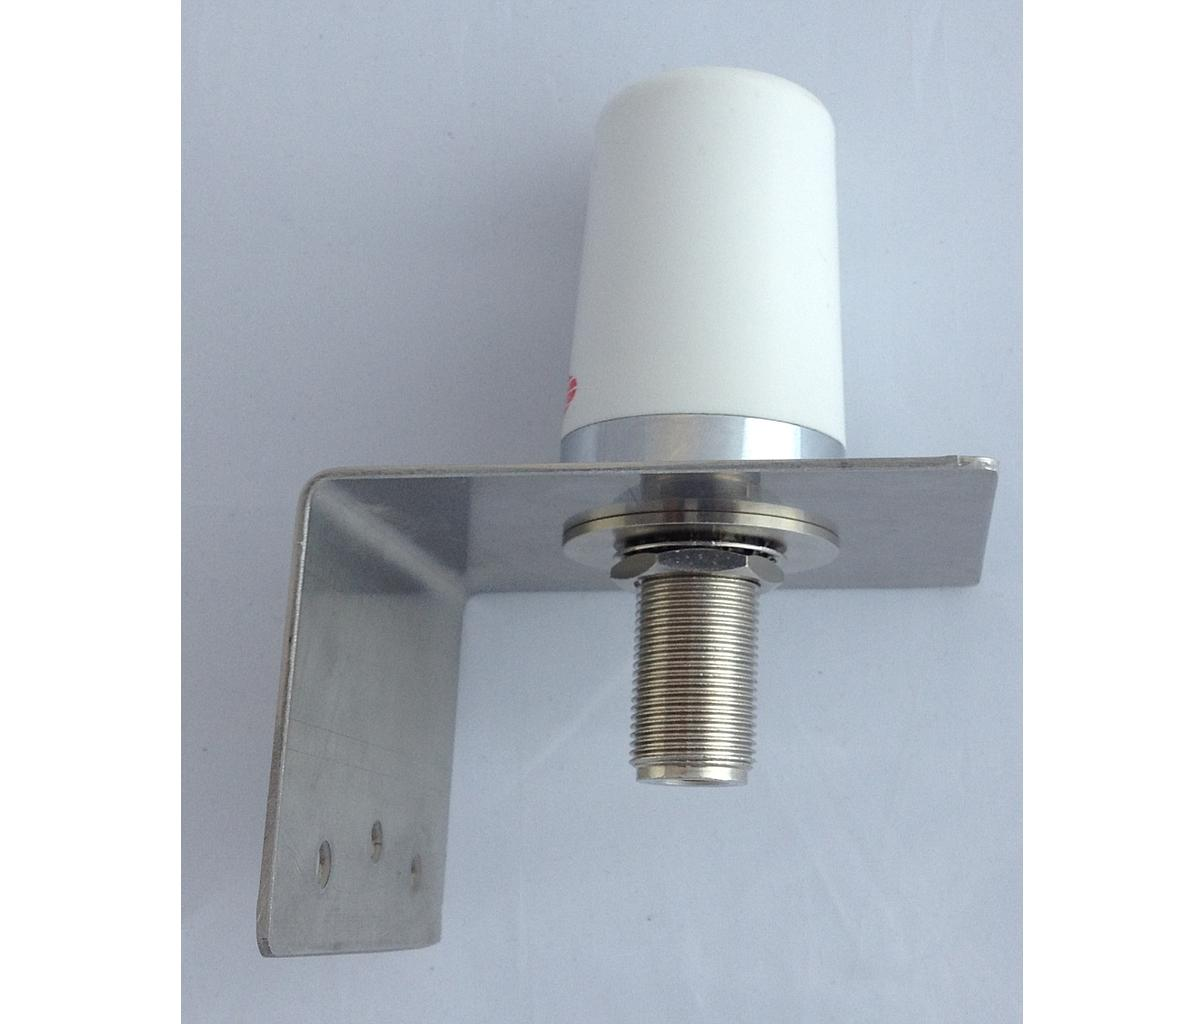 2.4 Ghz Phantom Antenna Kit